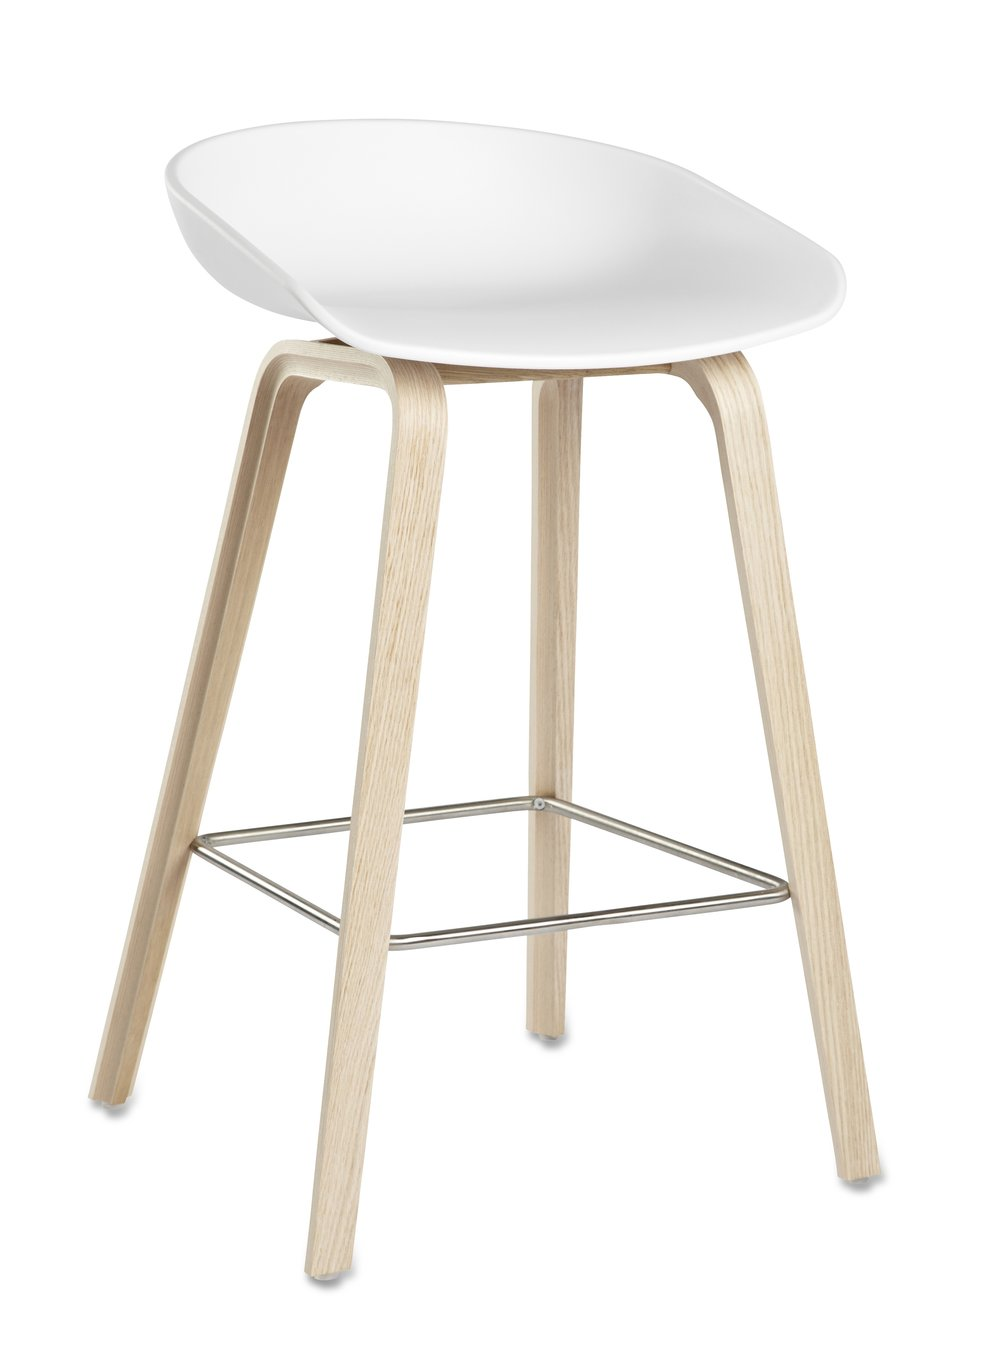 AAS32 About A Stool.jpg